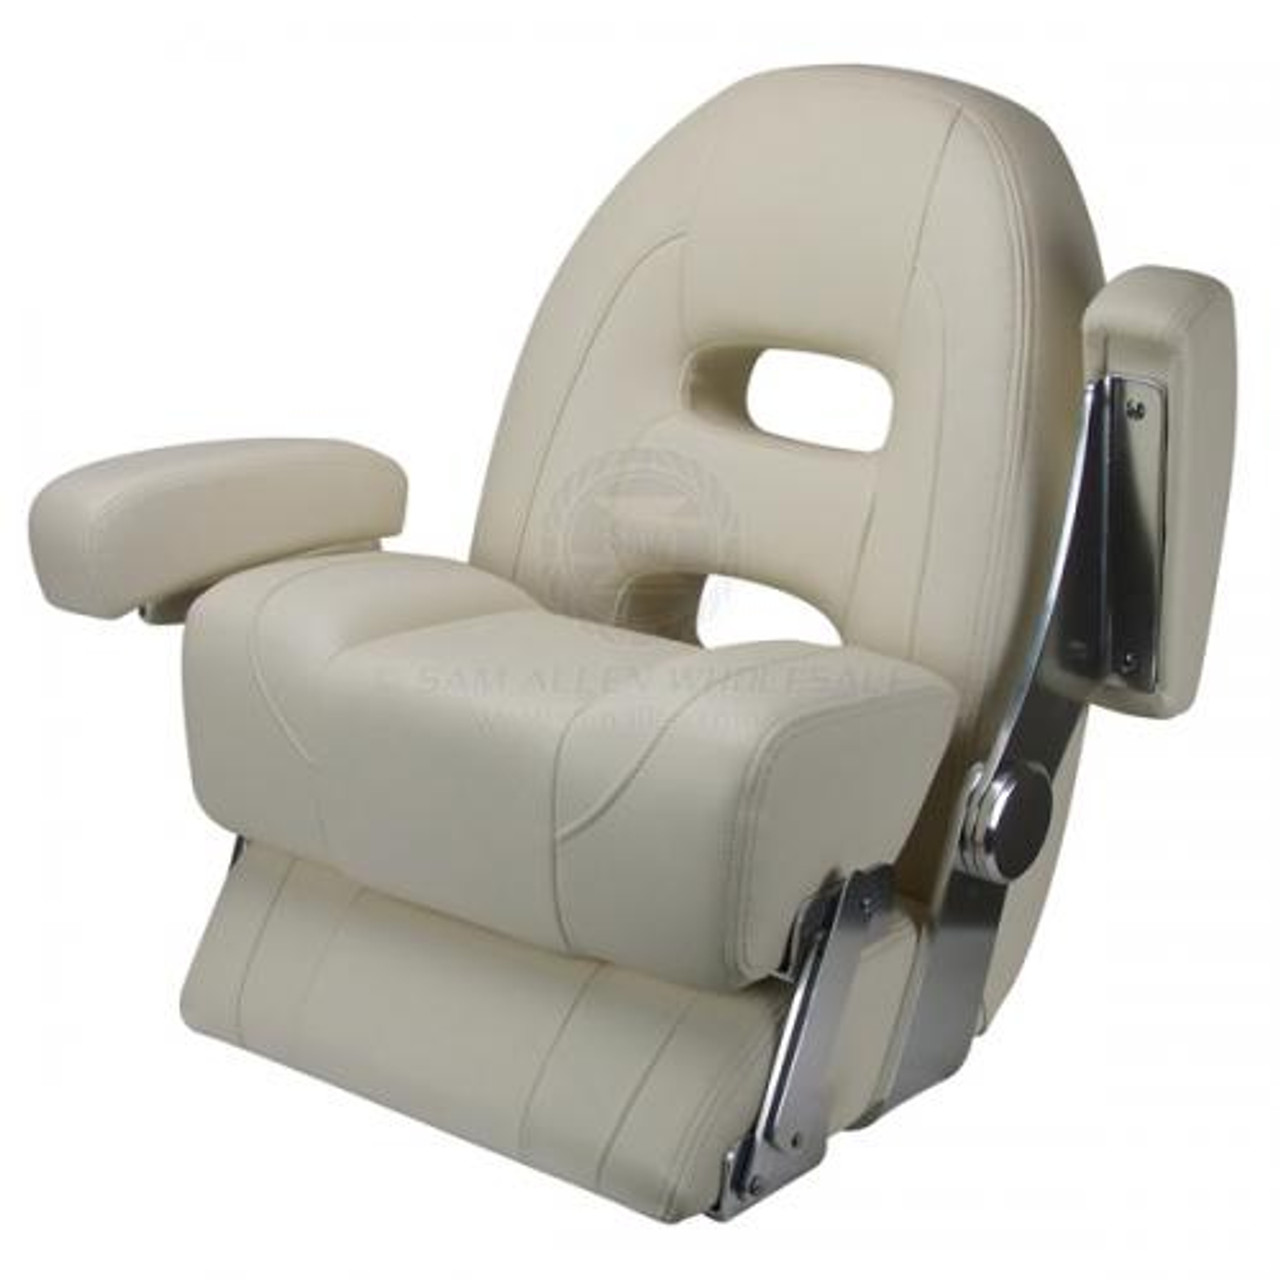 Adjustable arm rests and thigh support